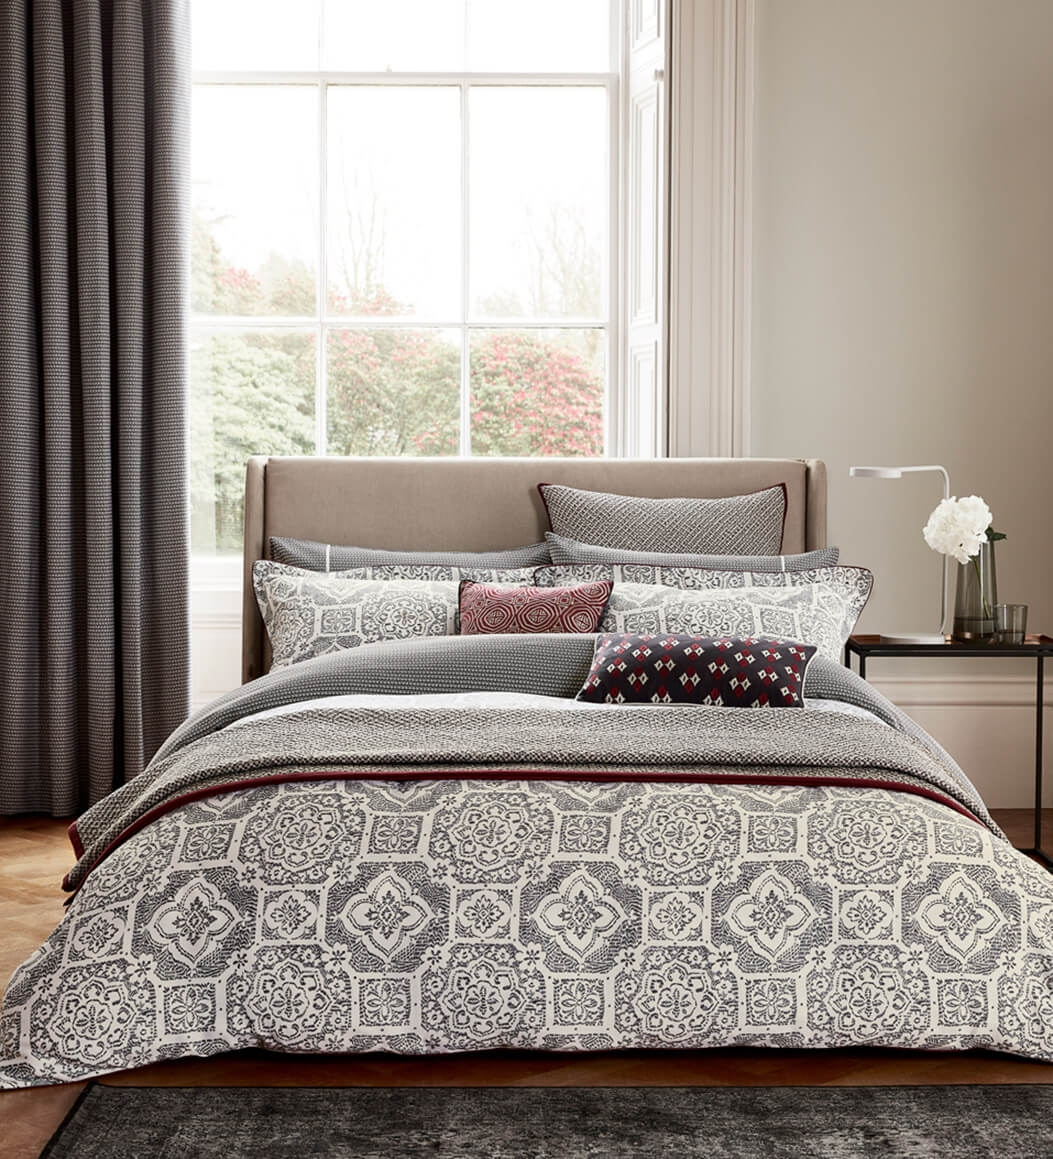 Image of Bedeck Amaya Duvet Cover, Single, Charcoal